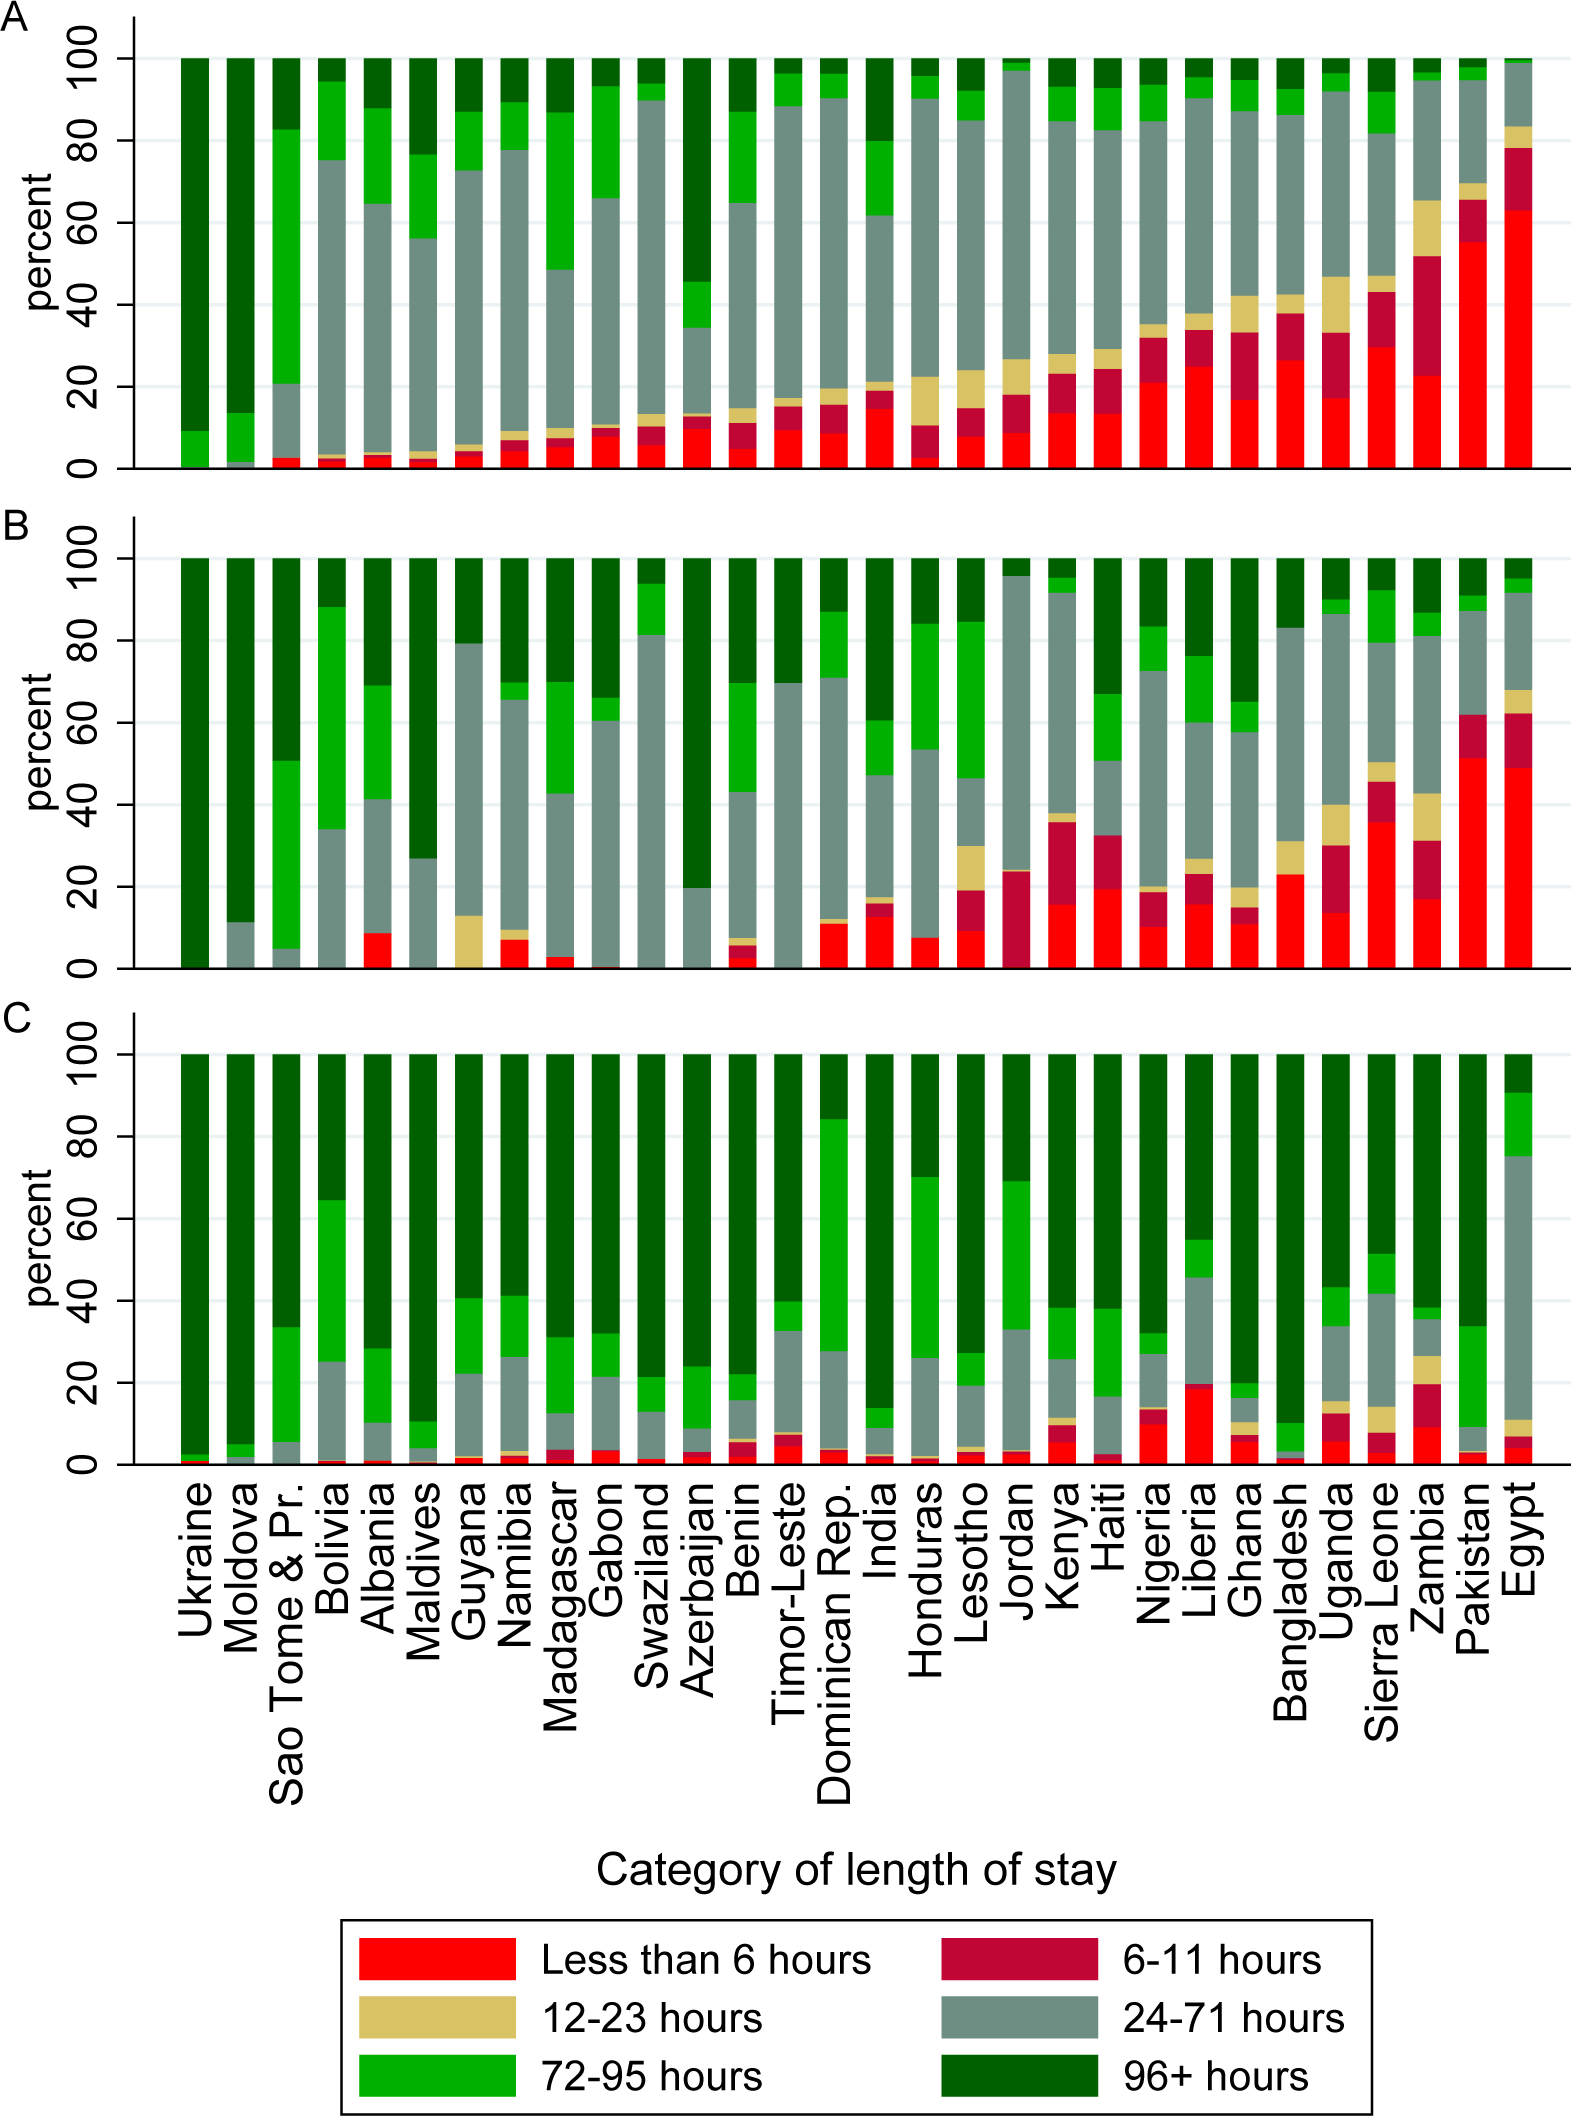 Proportion of vaginal singleton, vaginal multiple, and cesarean deliveries by category of length of stay, for 30 countries with DHS data.